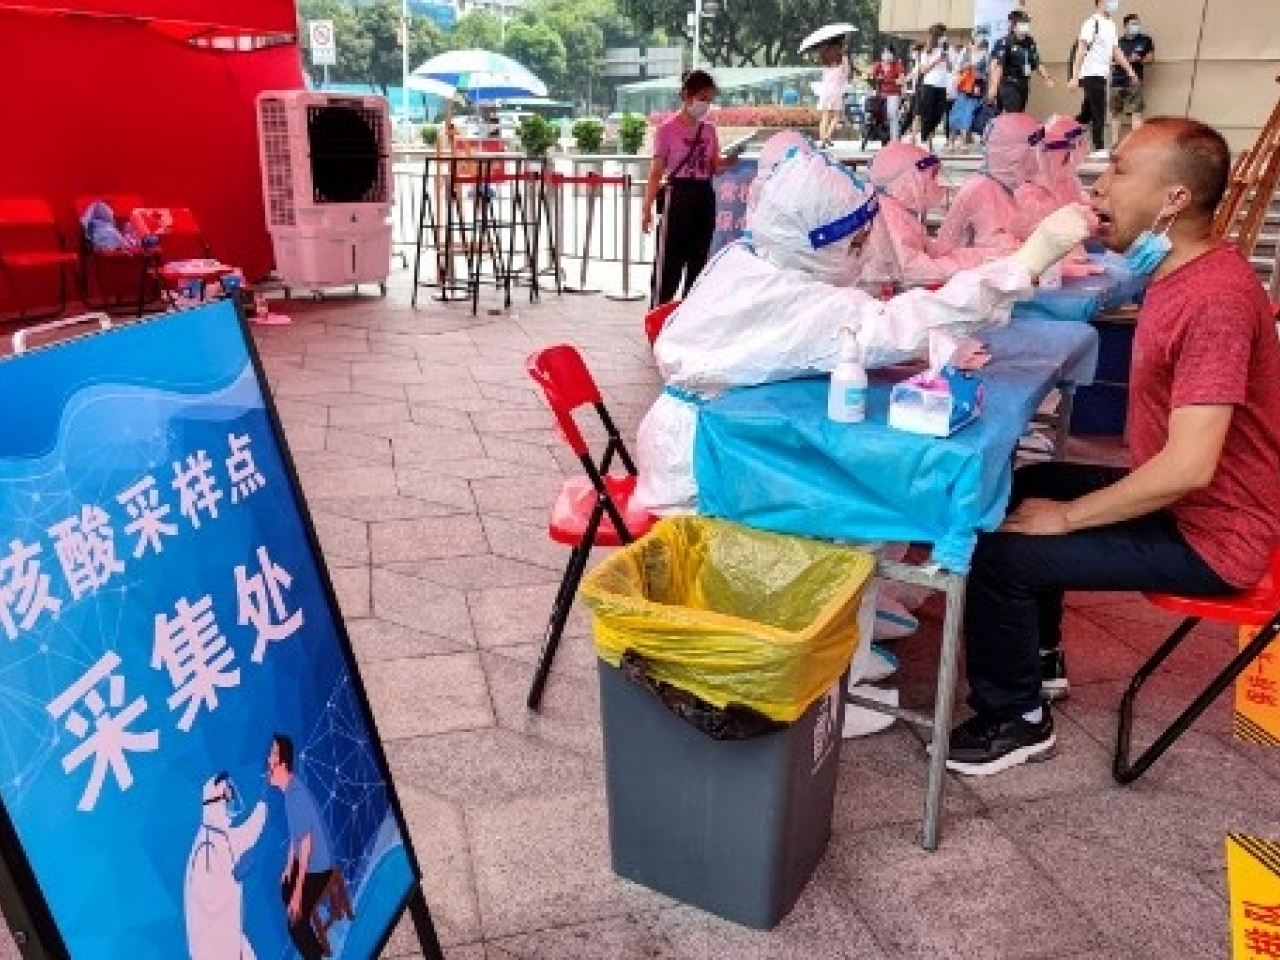 People receive nucleic acid tests for the Covid-19 coronavirus in Shenzhen. File photo: AFP